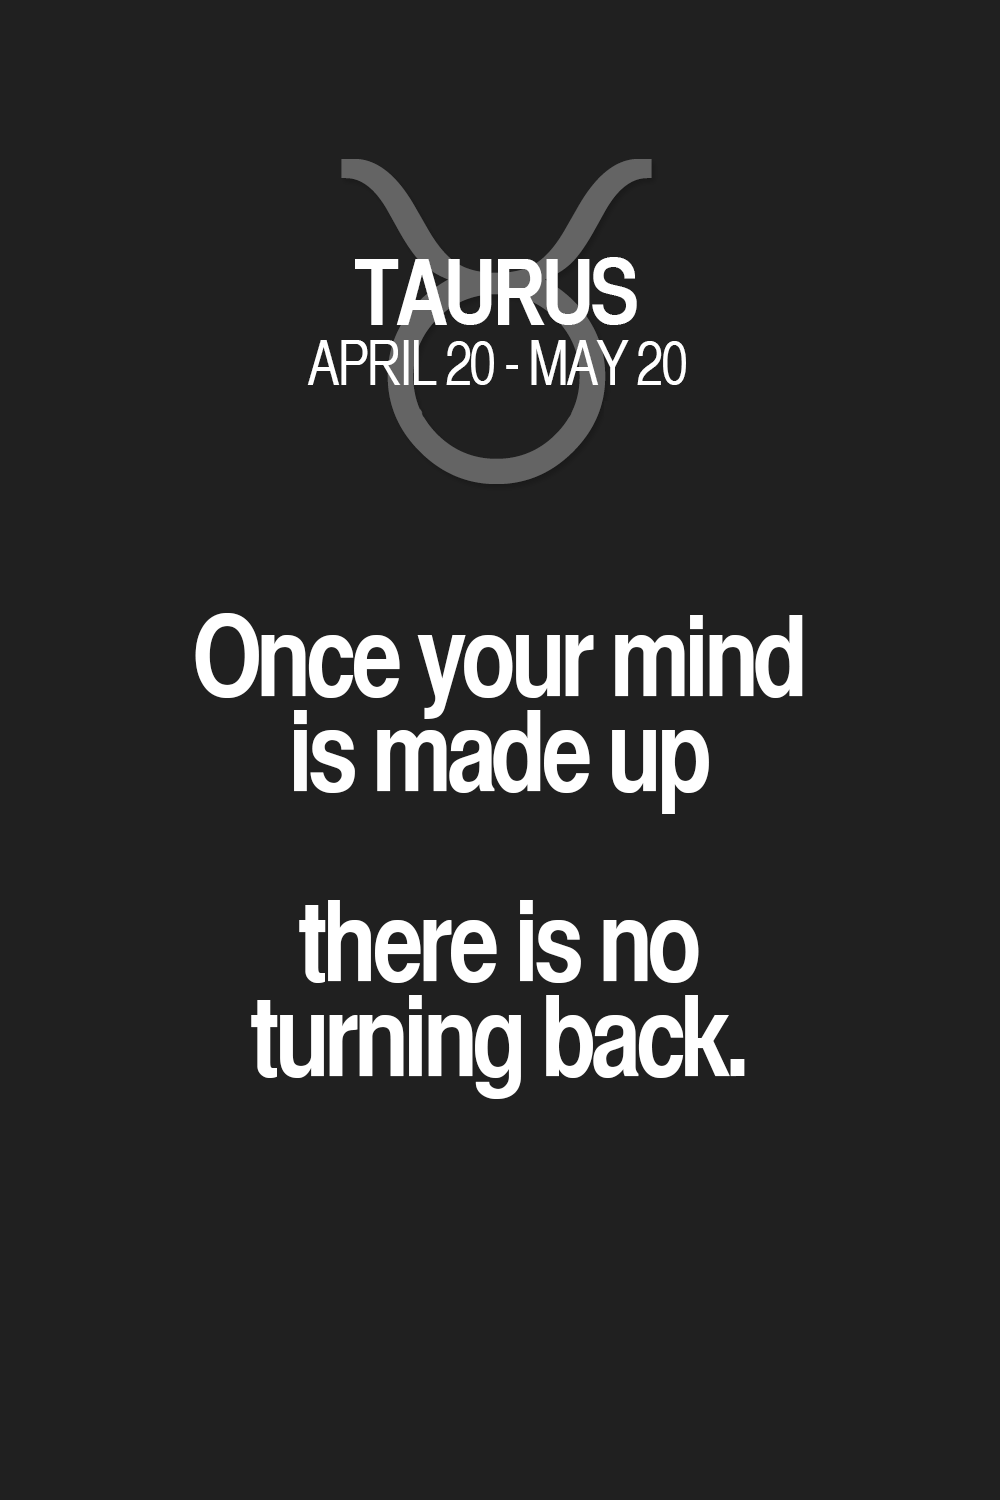 Once Your Mind Is Made Up There Is No Turning Back Taurus Taurus Quotes Taurus Zodiac Signs Taurus Quotes Good Life Quotes Taurus Facts